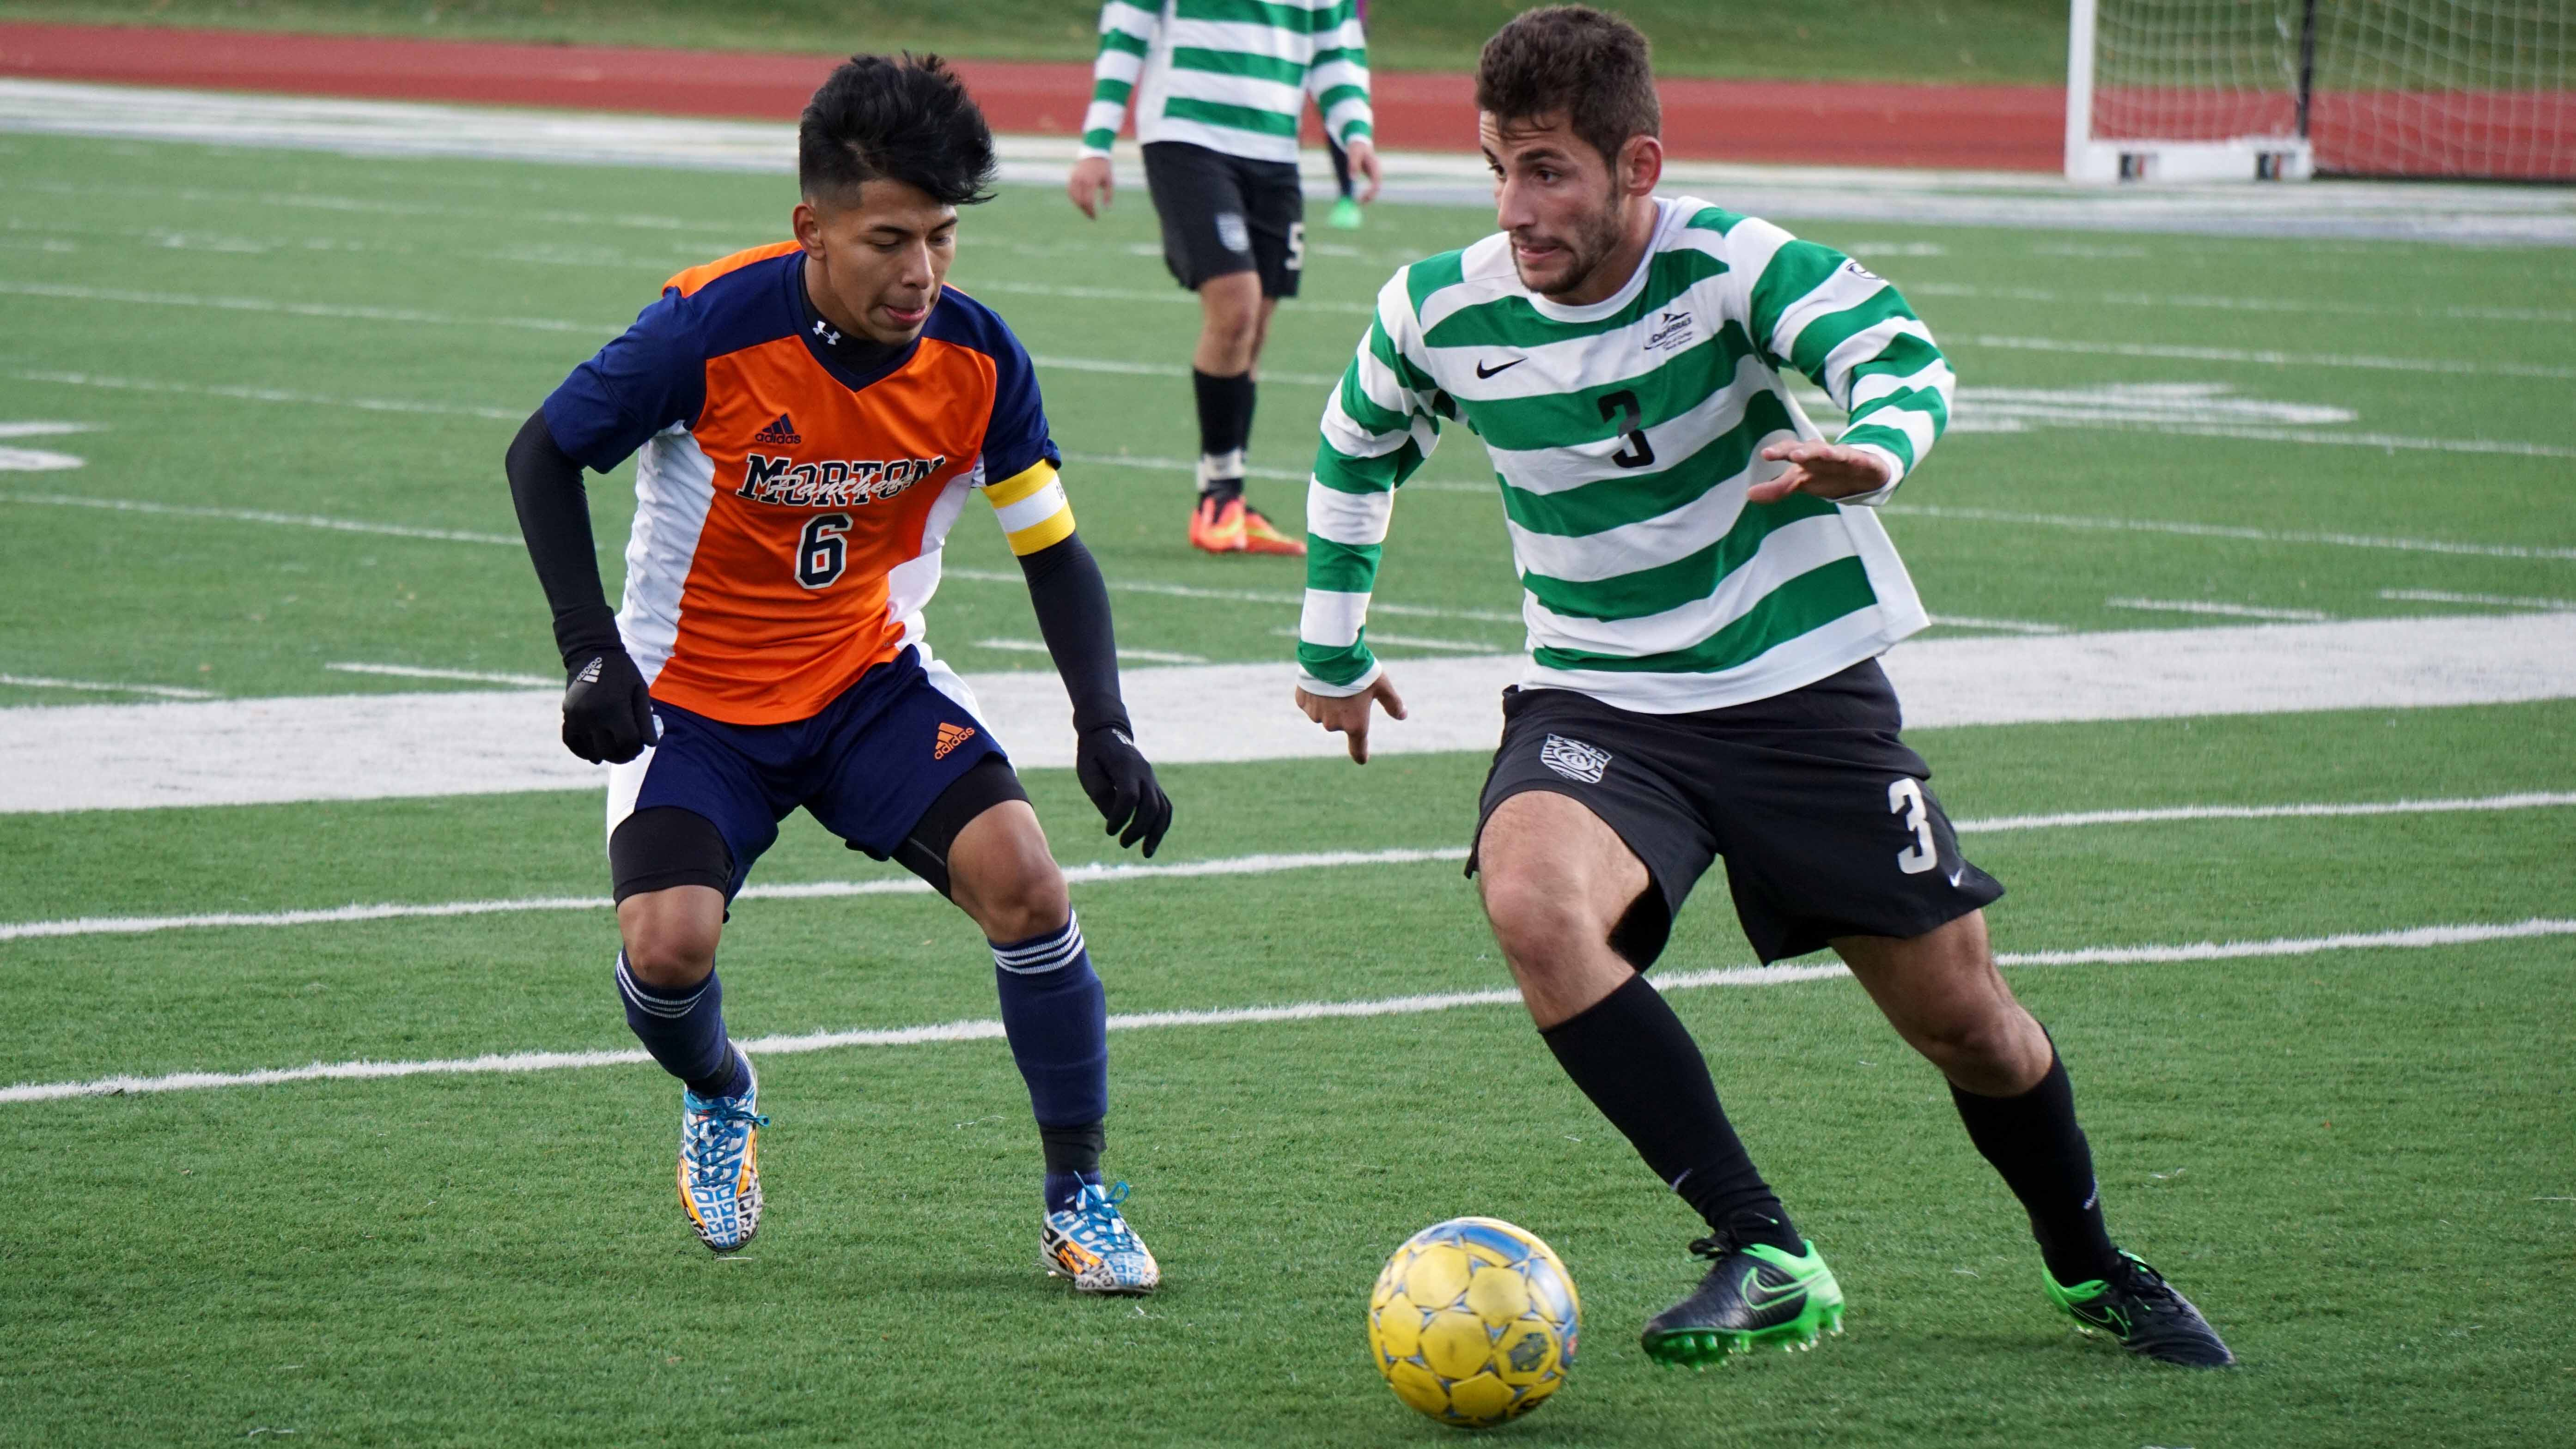 Chaparral player #3 Hajhar Agha jukes past a Morton Community College player at the Region IV Finals match against Morton at the College of DuPage on Nov. 7.